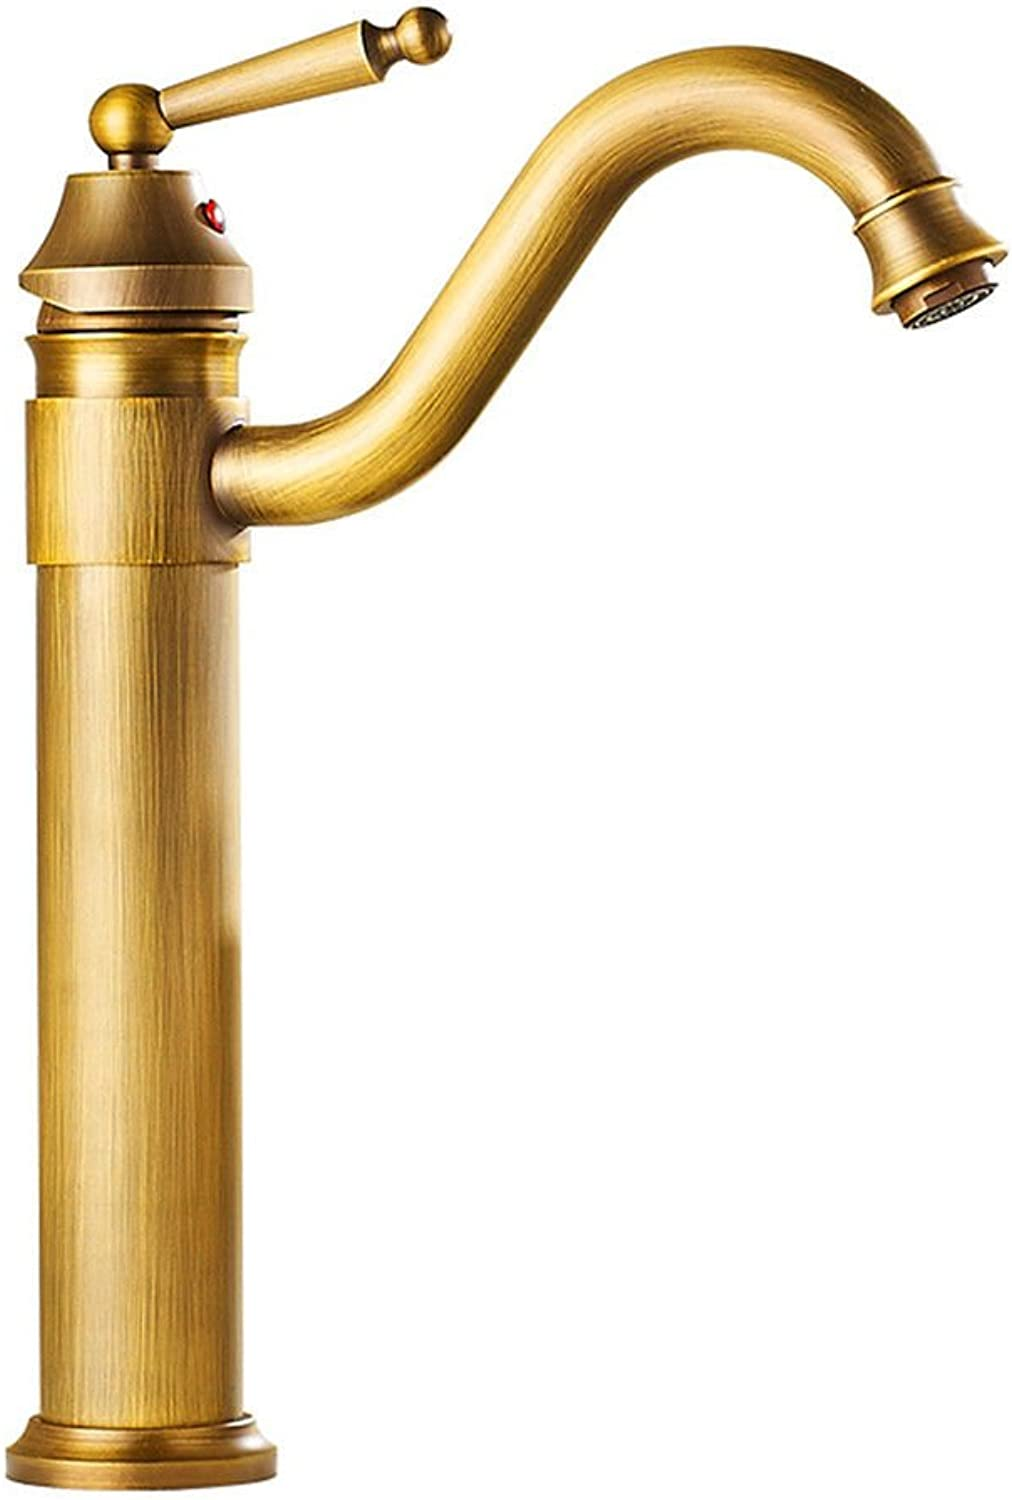 Single-Handle Kitchen Mixer Sink Tap Kitchen Faucet Basin faucet copper antique hot and cold faucet heightening single hole above counter basin faucet retro faucet with UK Standard Fittings